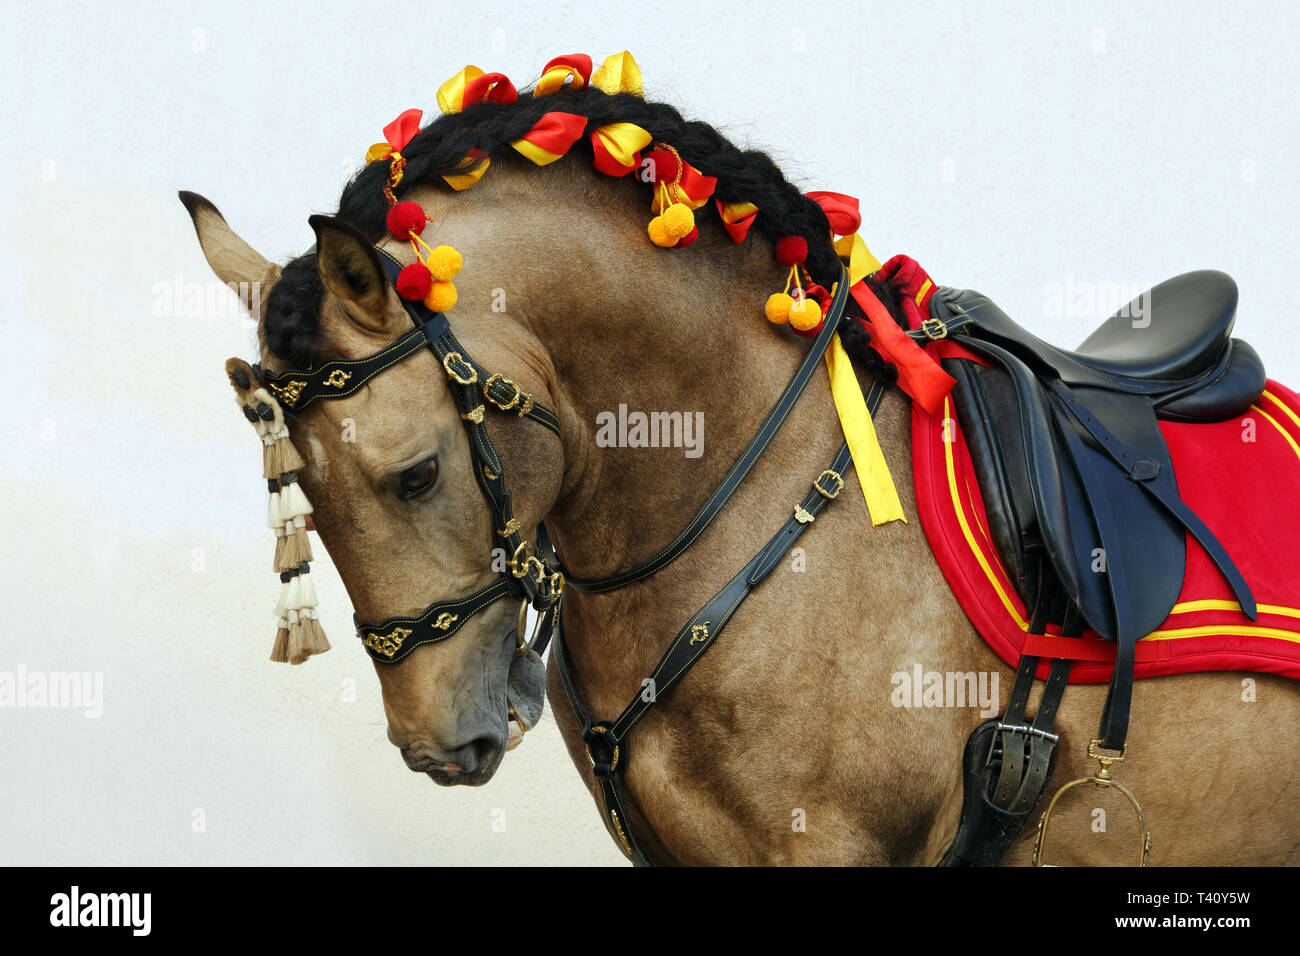 Lusitano horse is a breed of very ancient and elegant equines that developed in the Iberian Peninsula - Stock Image